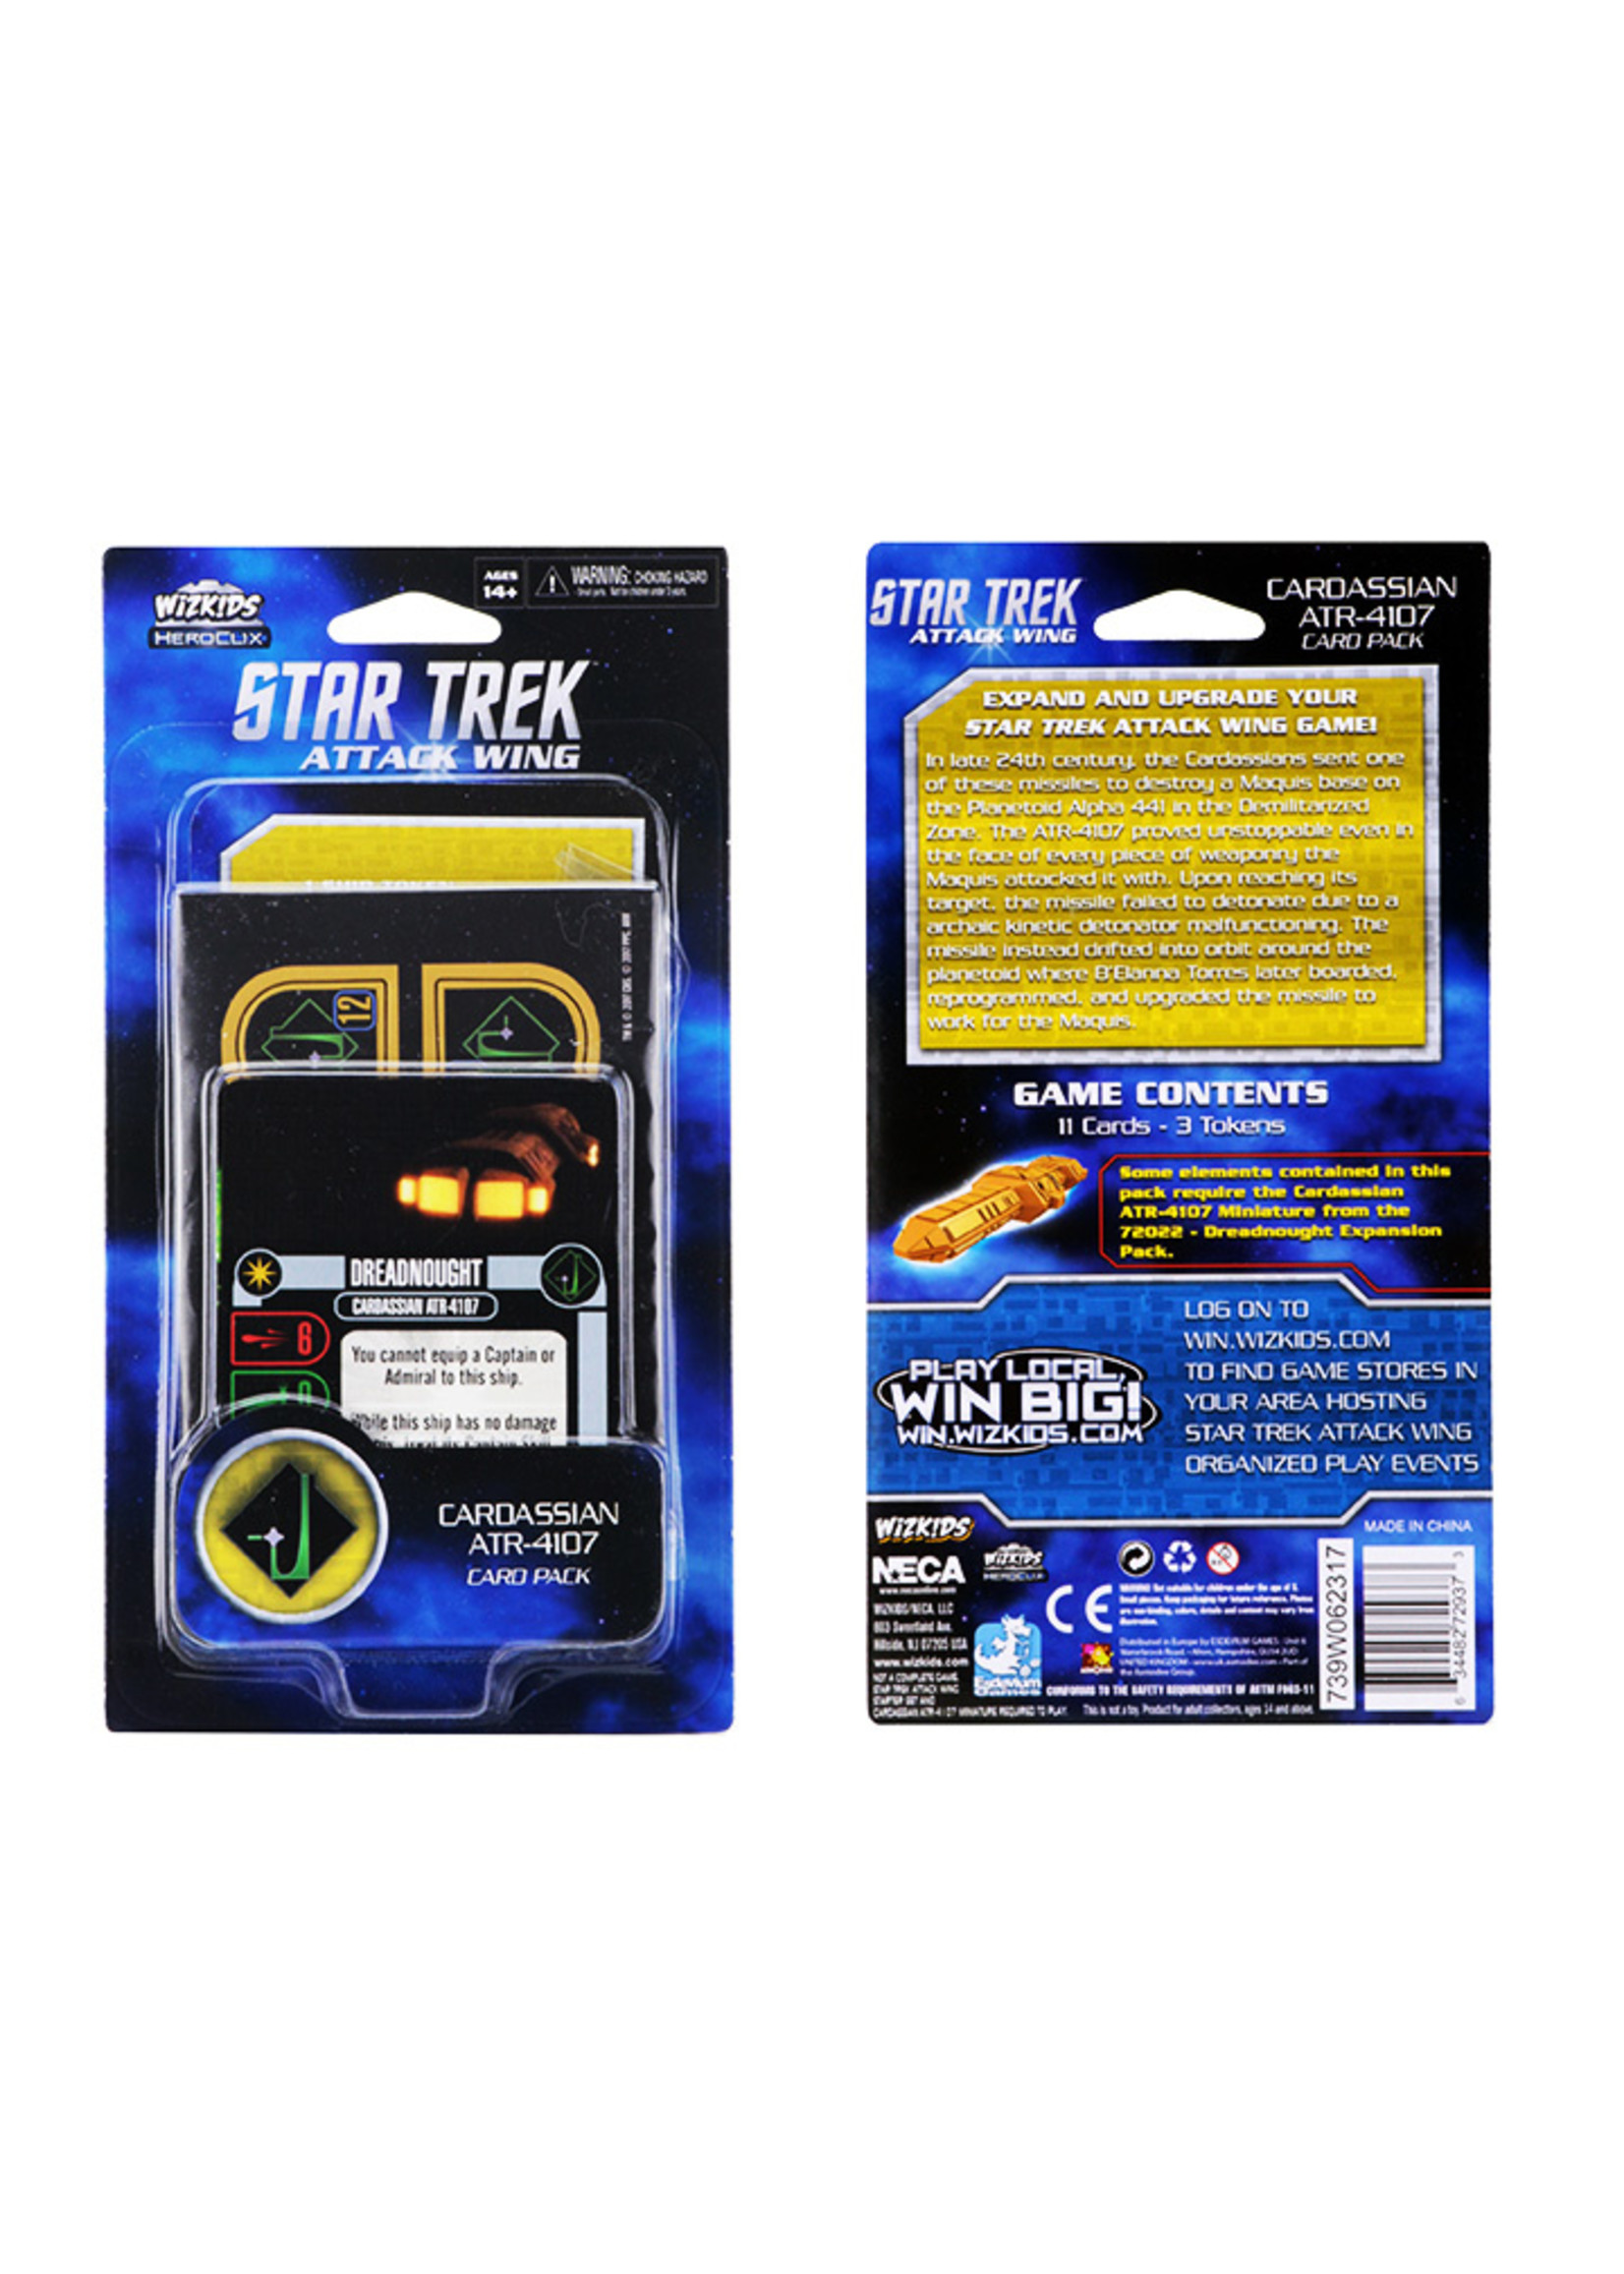 Star Trek Attack Wing: Cardassian ATR-4107 Card Pack Wave 1